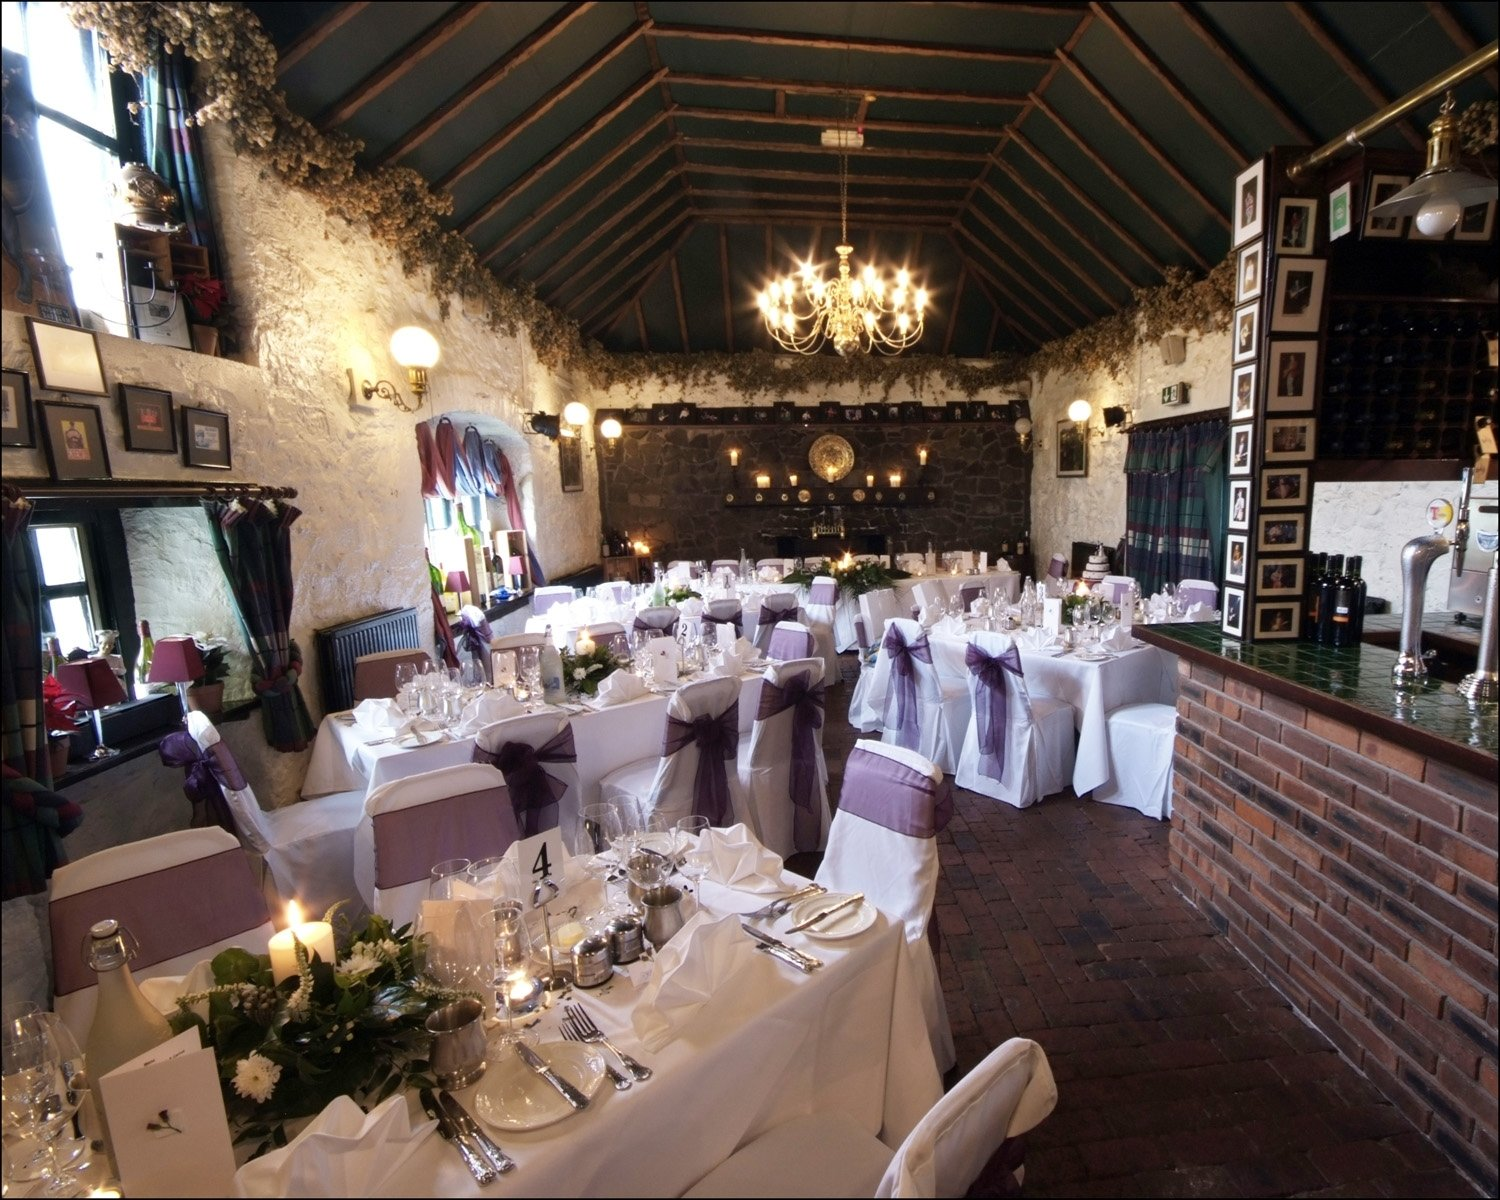 10 Lovely Reception Ideas For Small Weddings very small intimate wedding ideas wedding ideas uxjj 2021